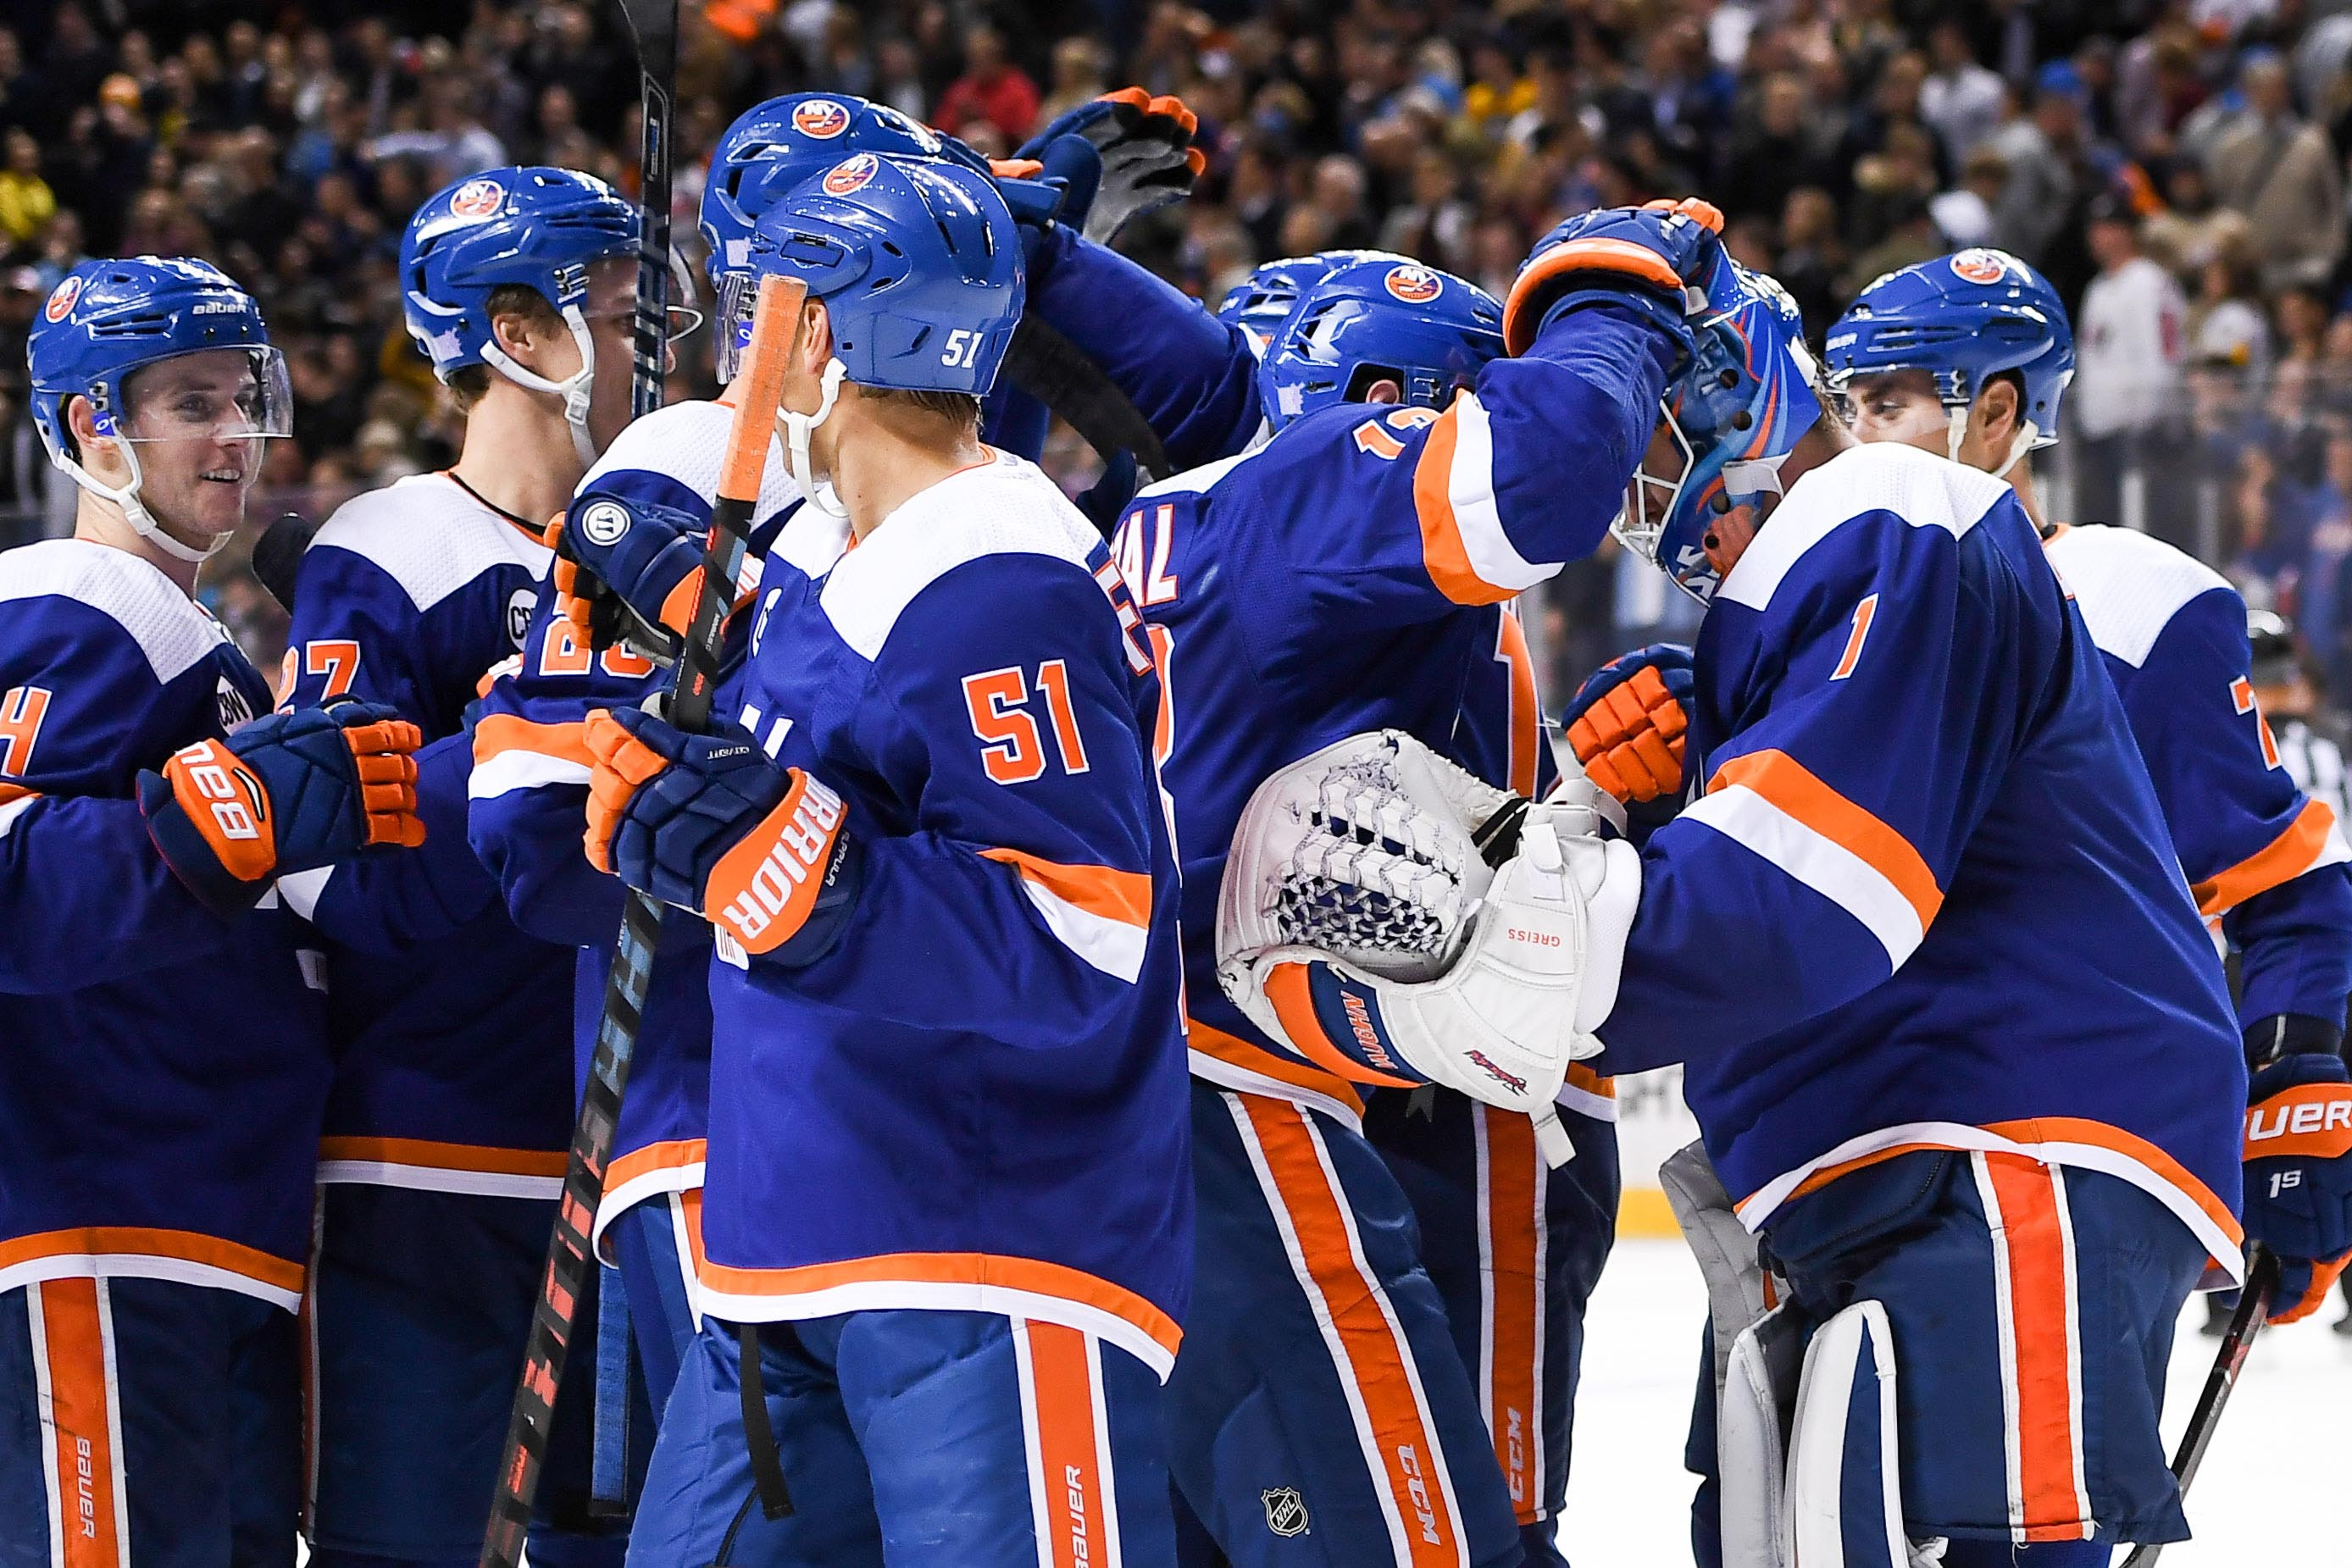 Nov 1, 2018; Brooklyn, NY, USA; New York Islanders celebrate the 3-2 win in shootouts against The Pittsburgh Penguins during shootouts at Barclays Center. Mandatory Credit: Dennis Schneidler-USA TODAY Sports